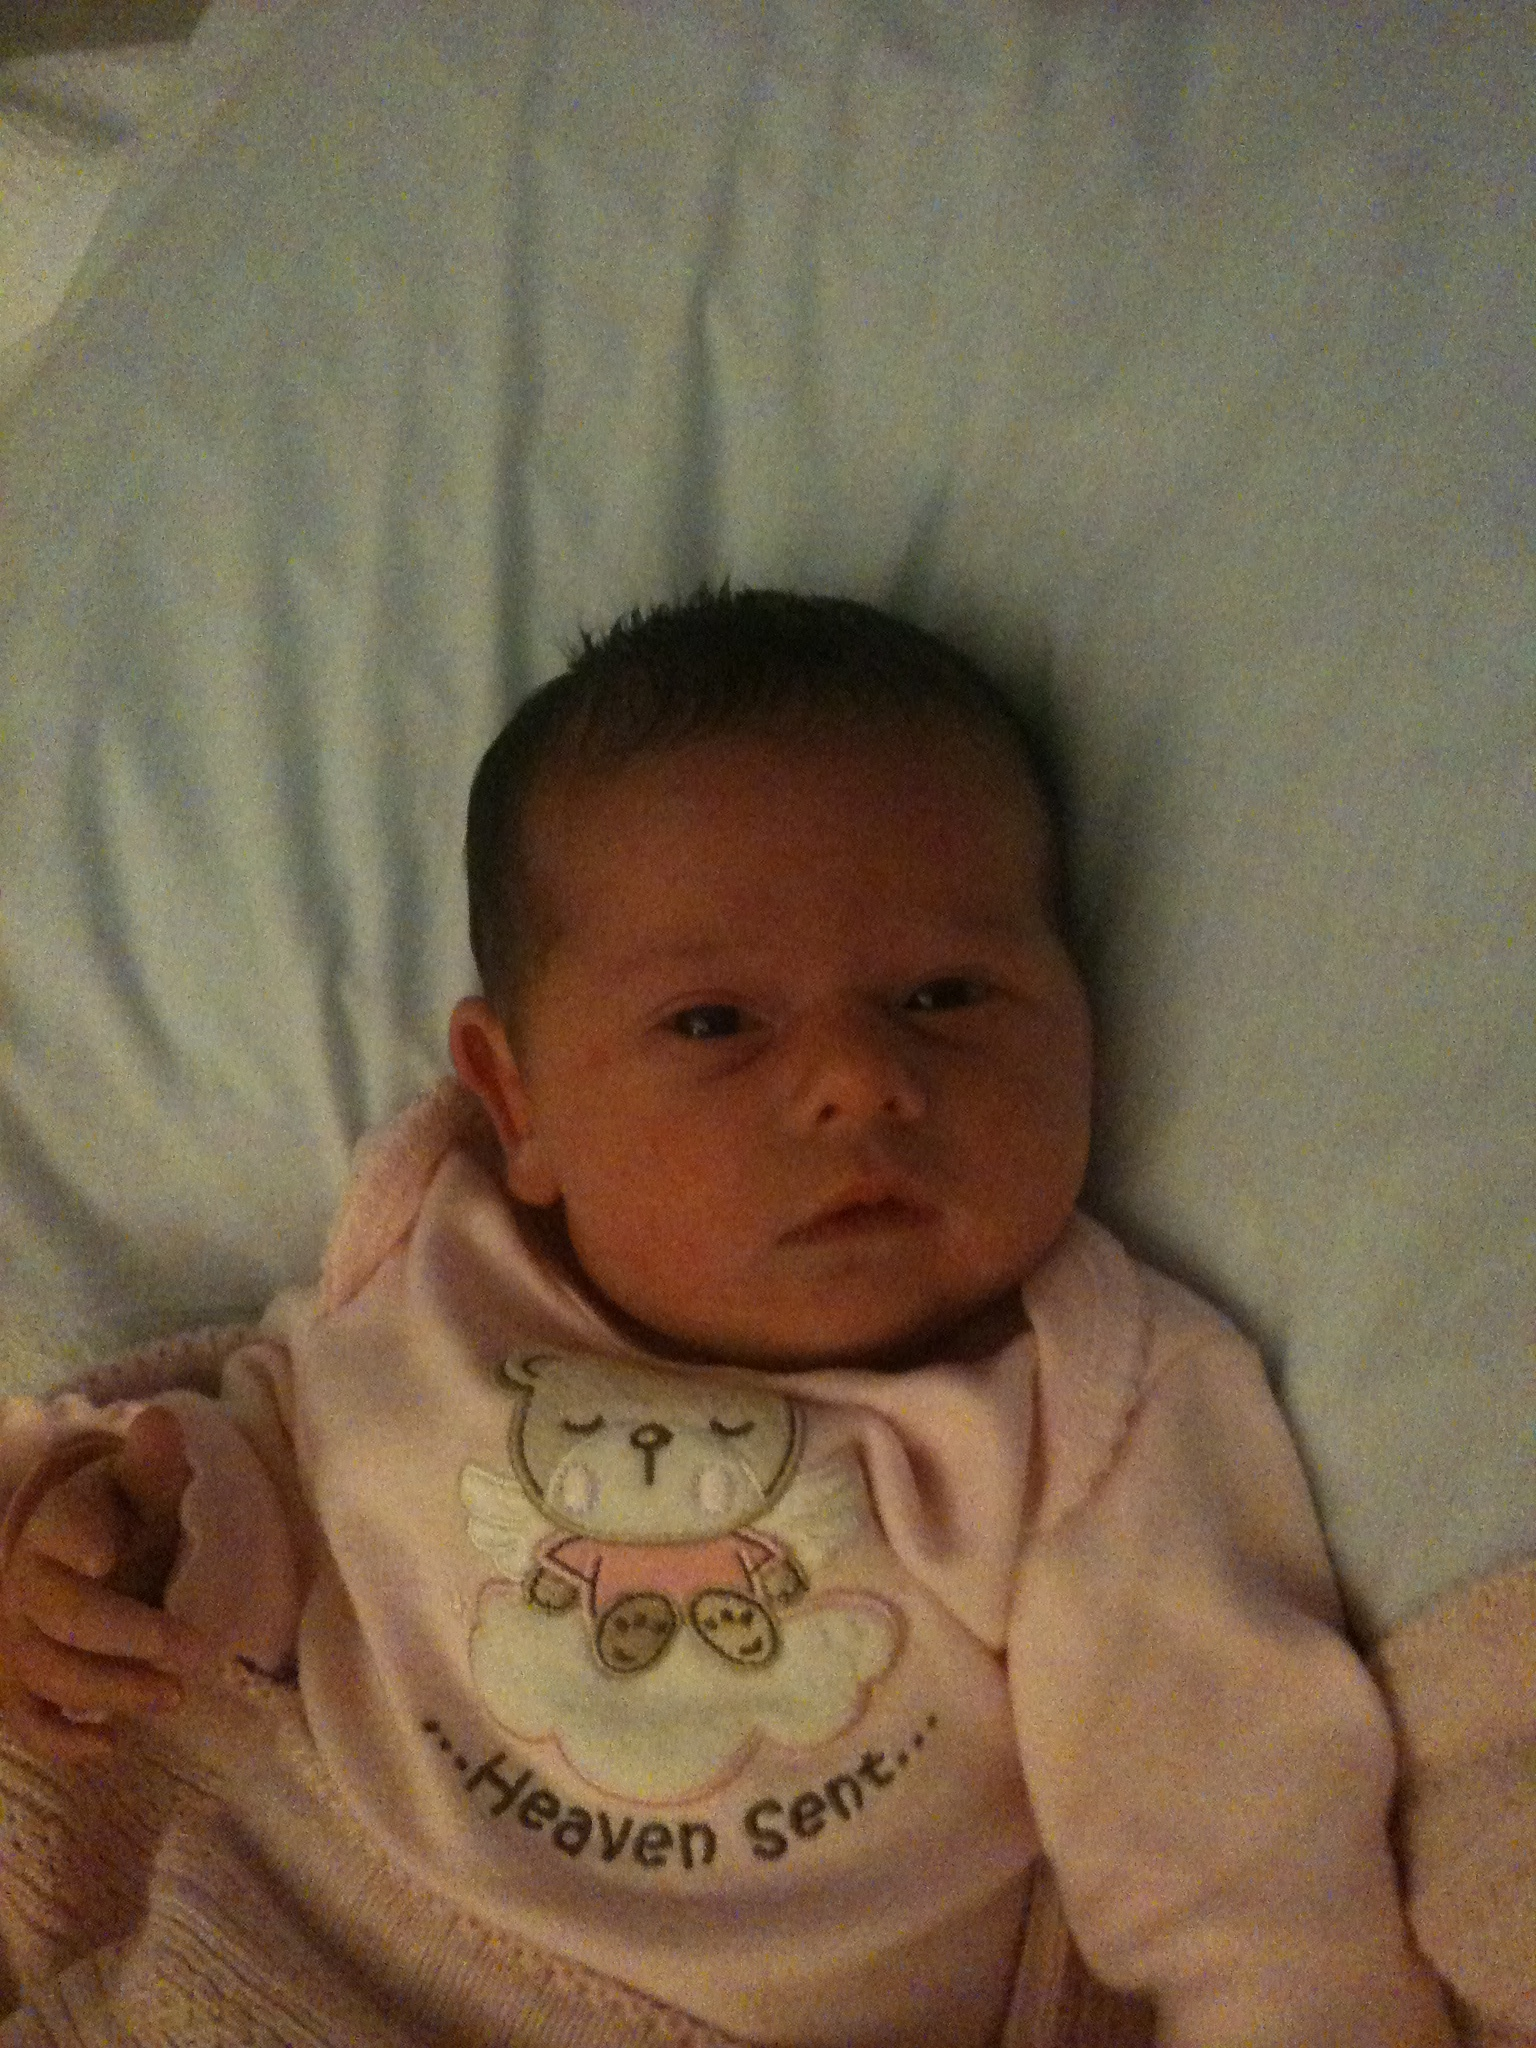 Doodlebug on the day she was born